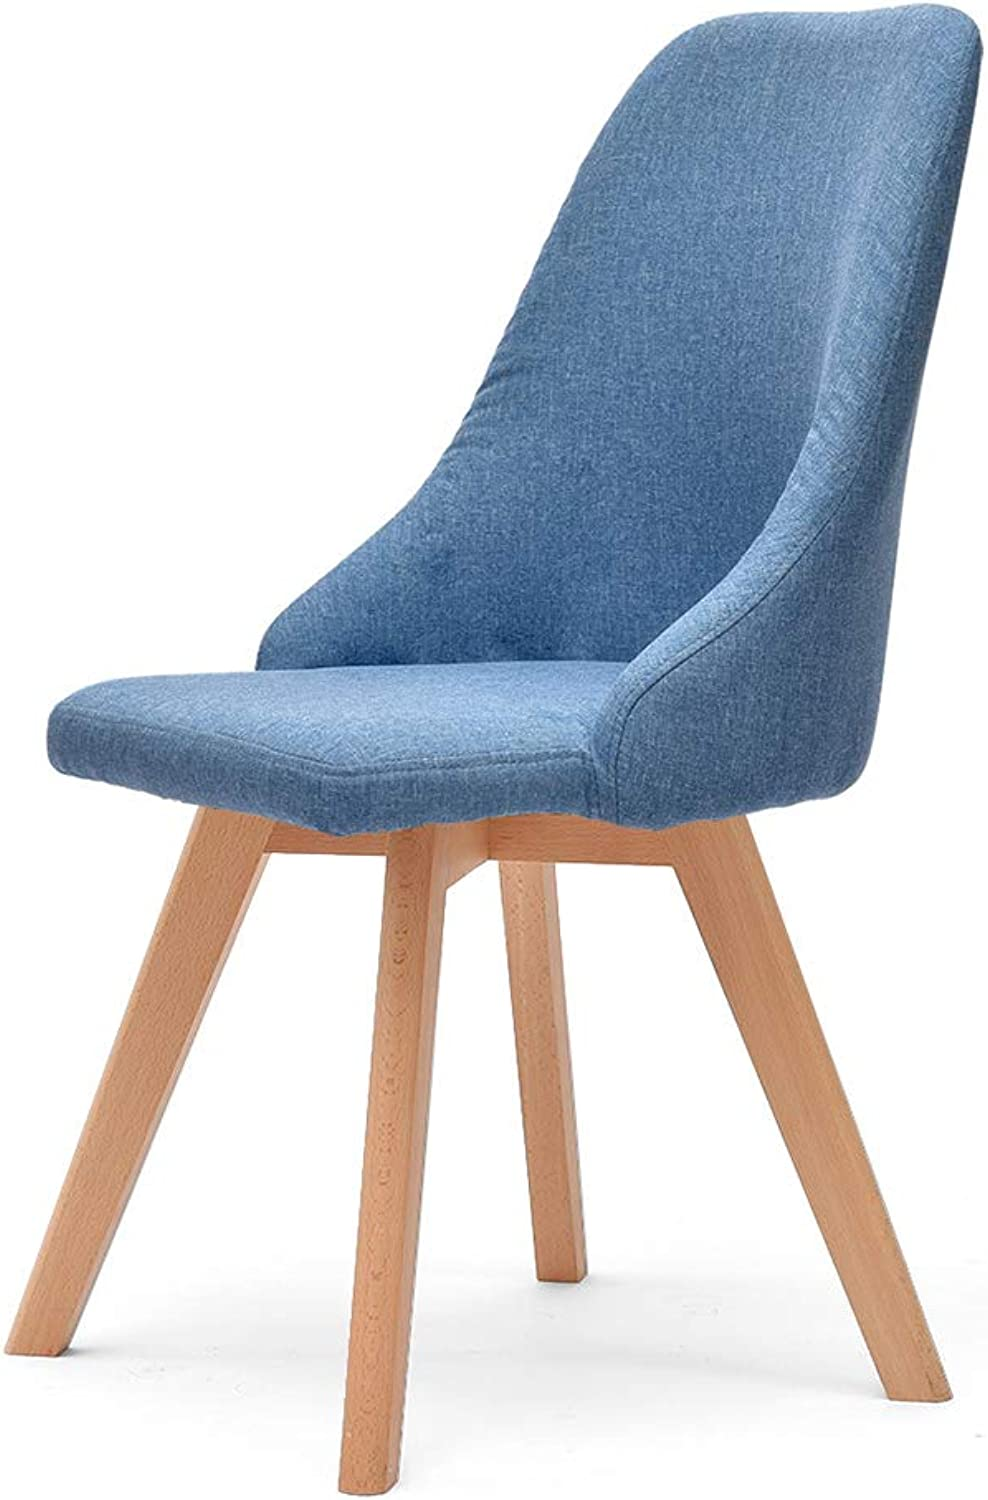 ZXQZ Solid Wood Chair, Backrest Chair Desk Chair with Cloth Art Bench for Home Adult Restaurant Stool (color   Lake blueeb)